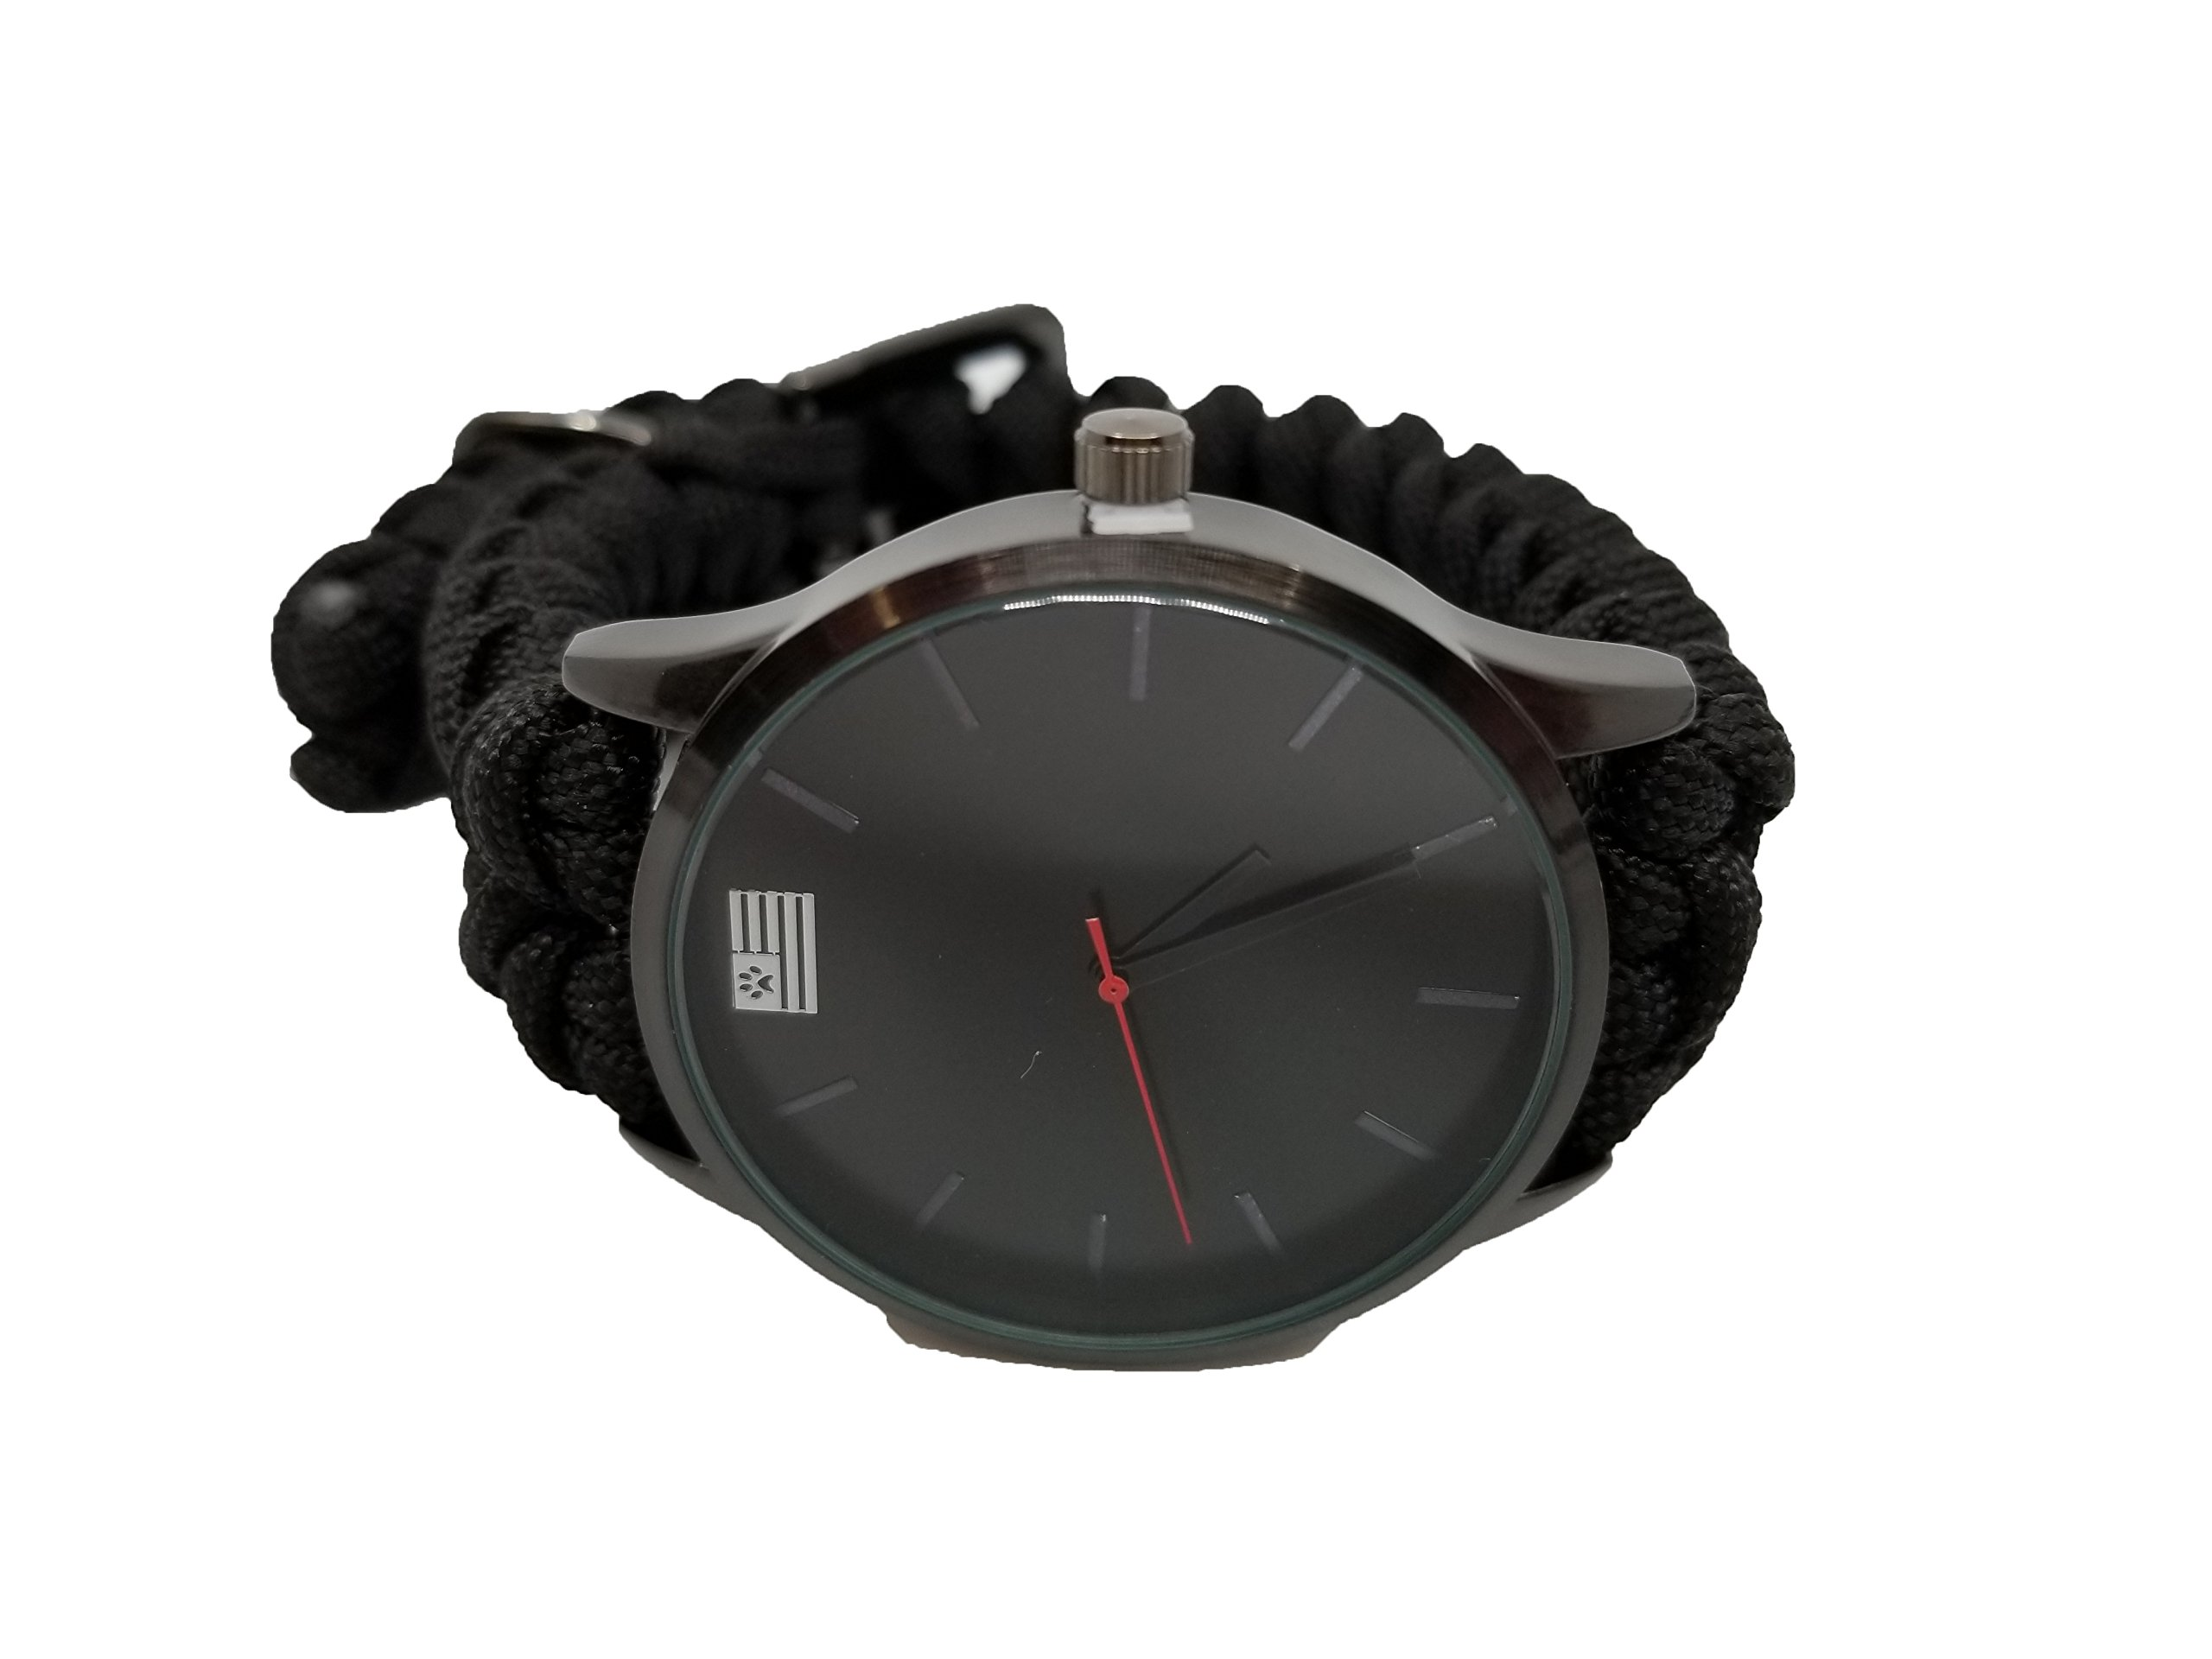 Black Paracord Analog Watch by iHeartDogs | Stylish Survival Gift For Men and Women! | Purchase Feeds 15 Shelter Dogs!